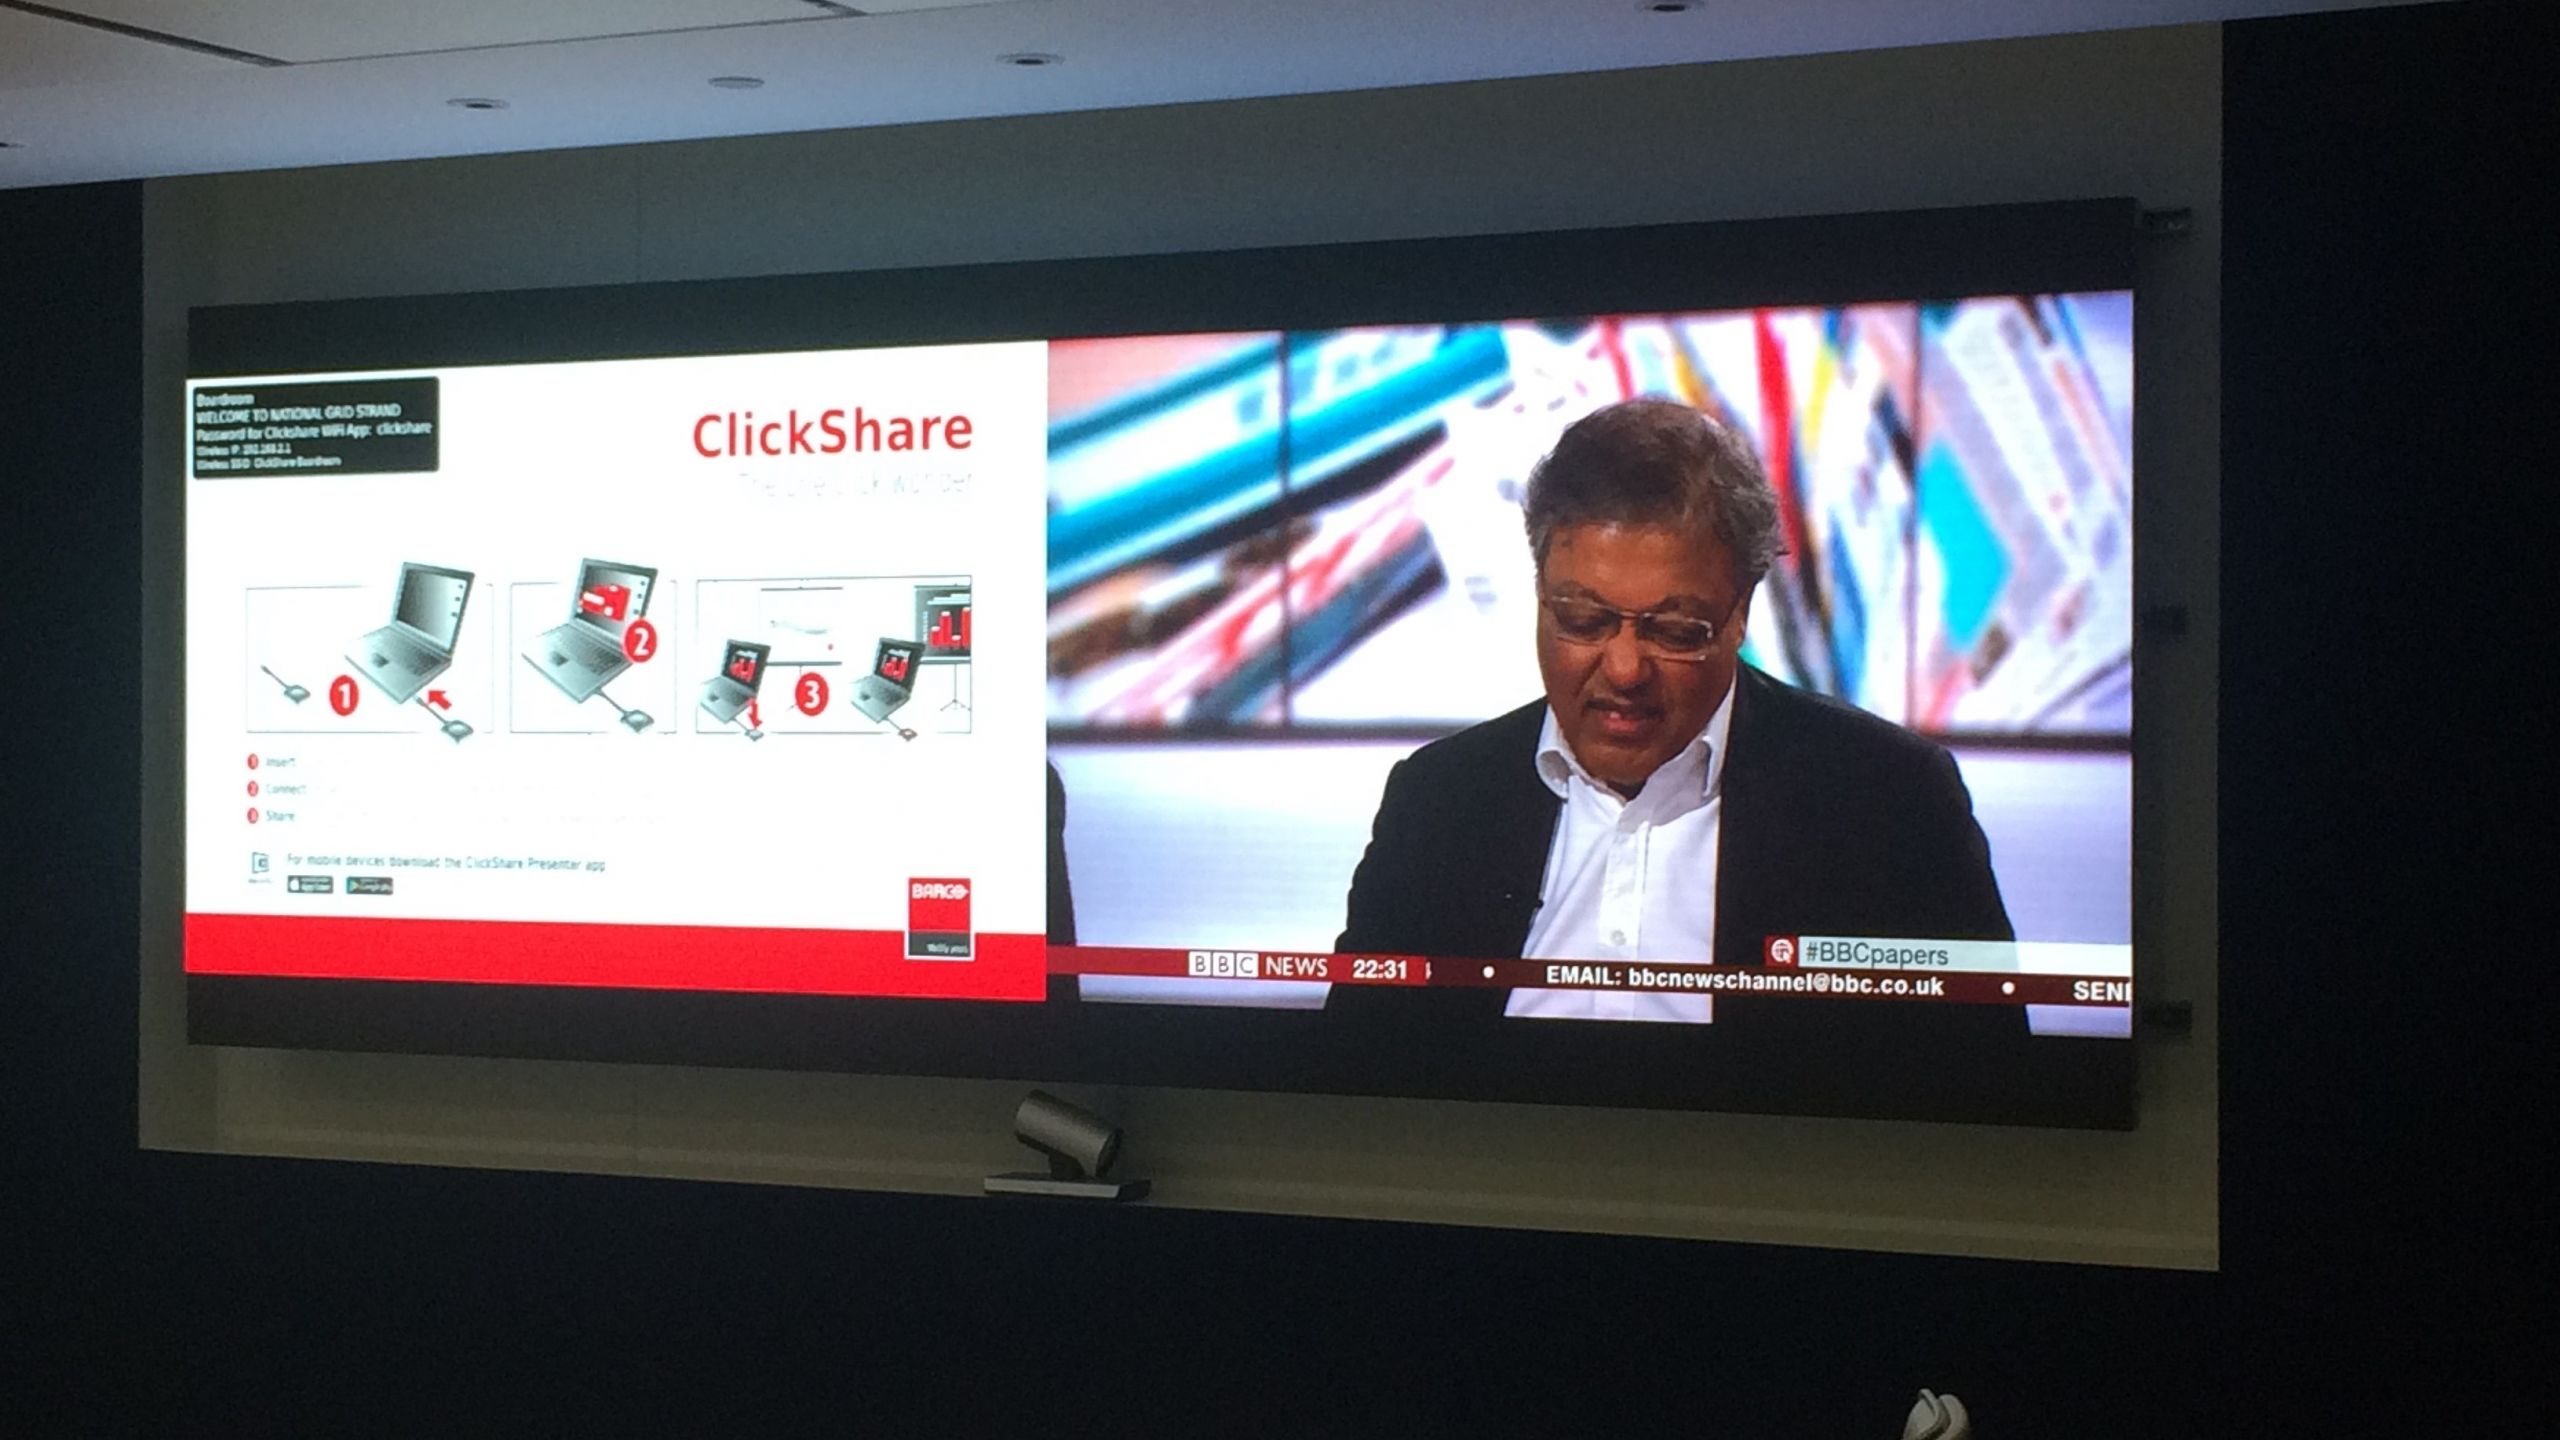 NG Large screen in use showing BBC presenter.